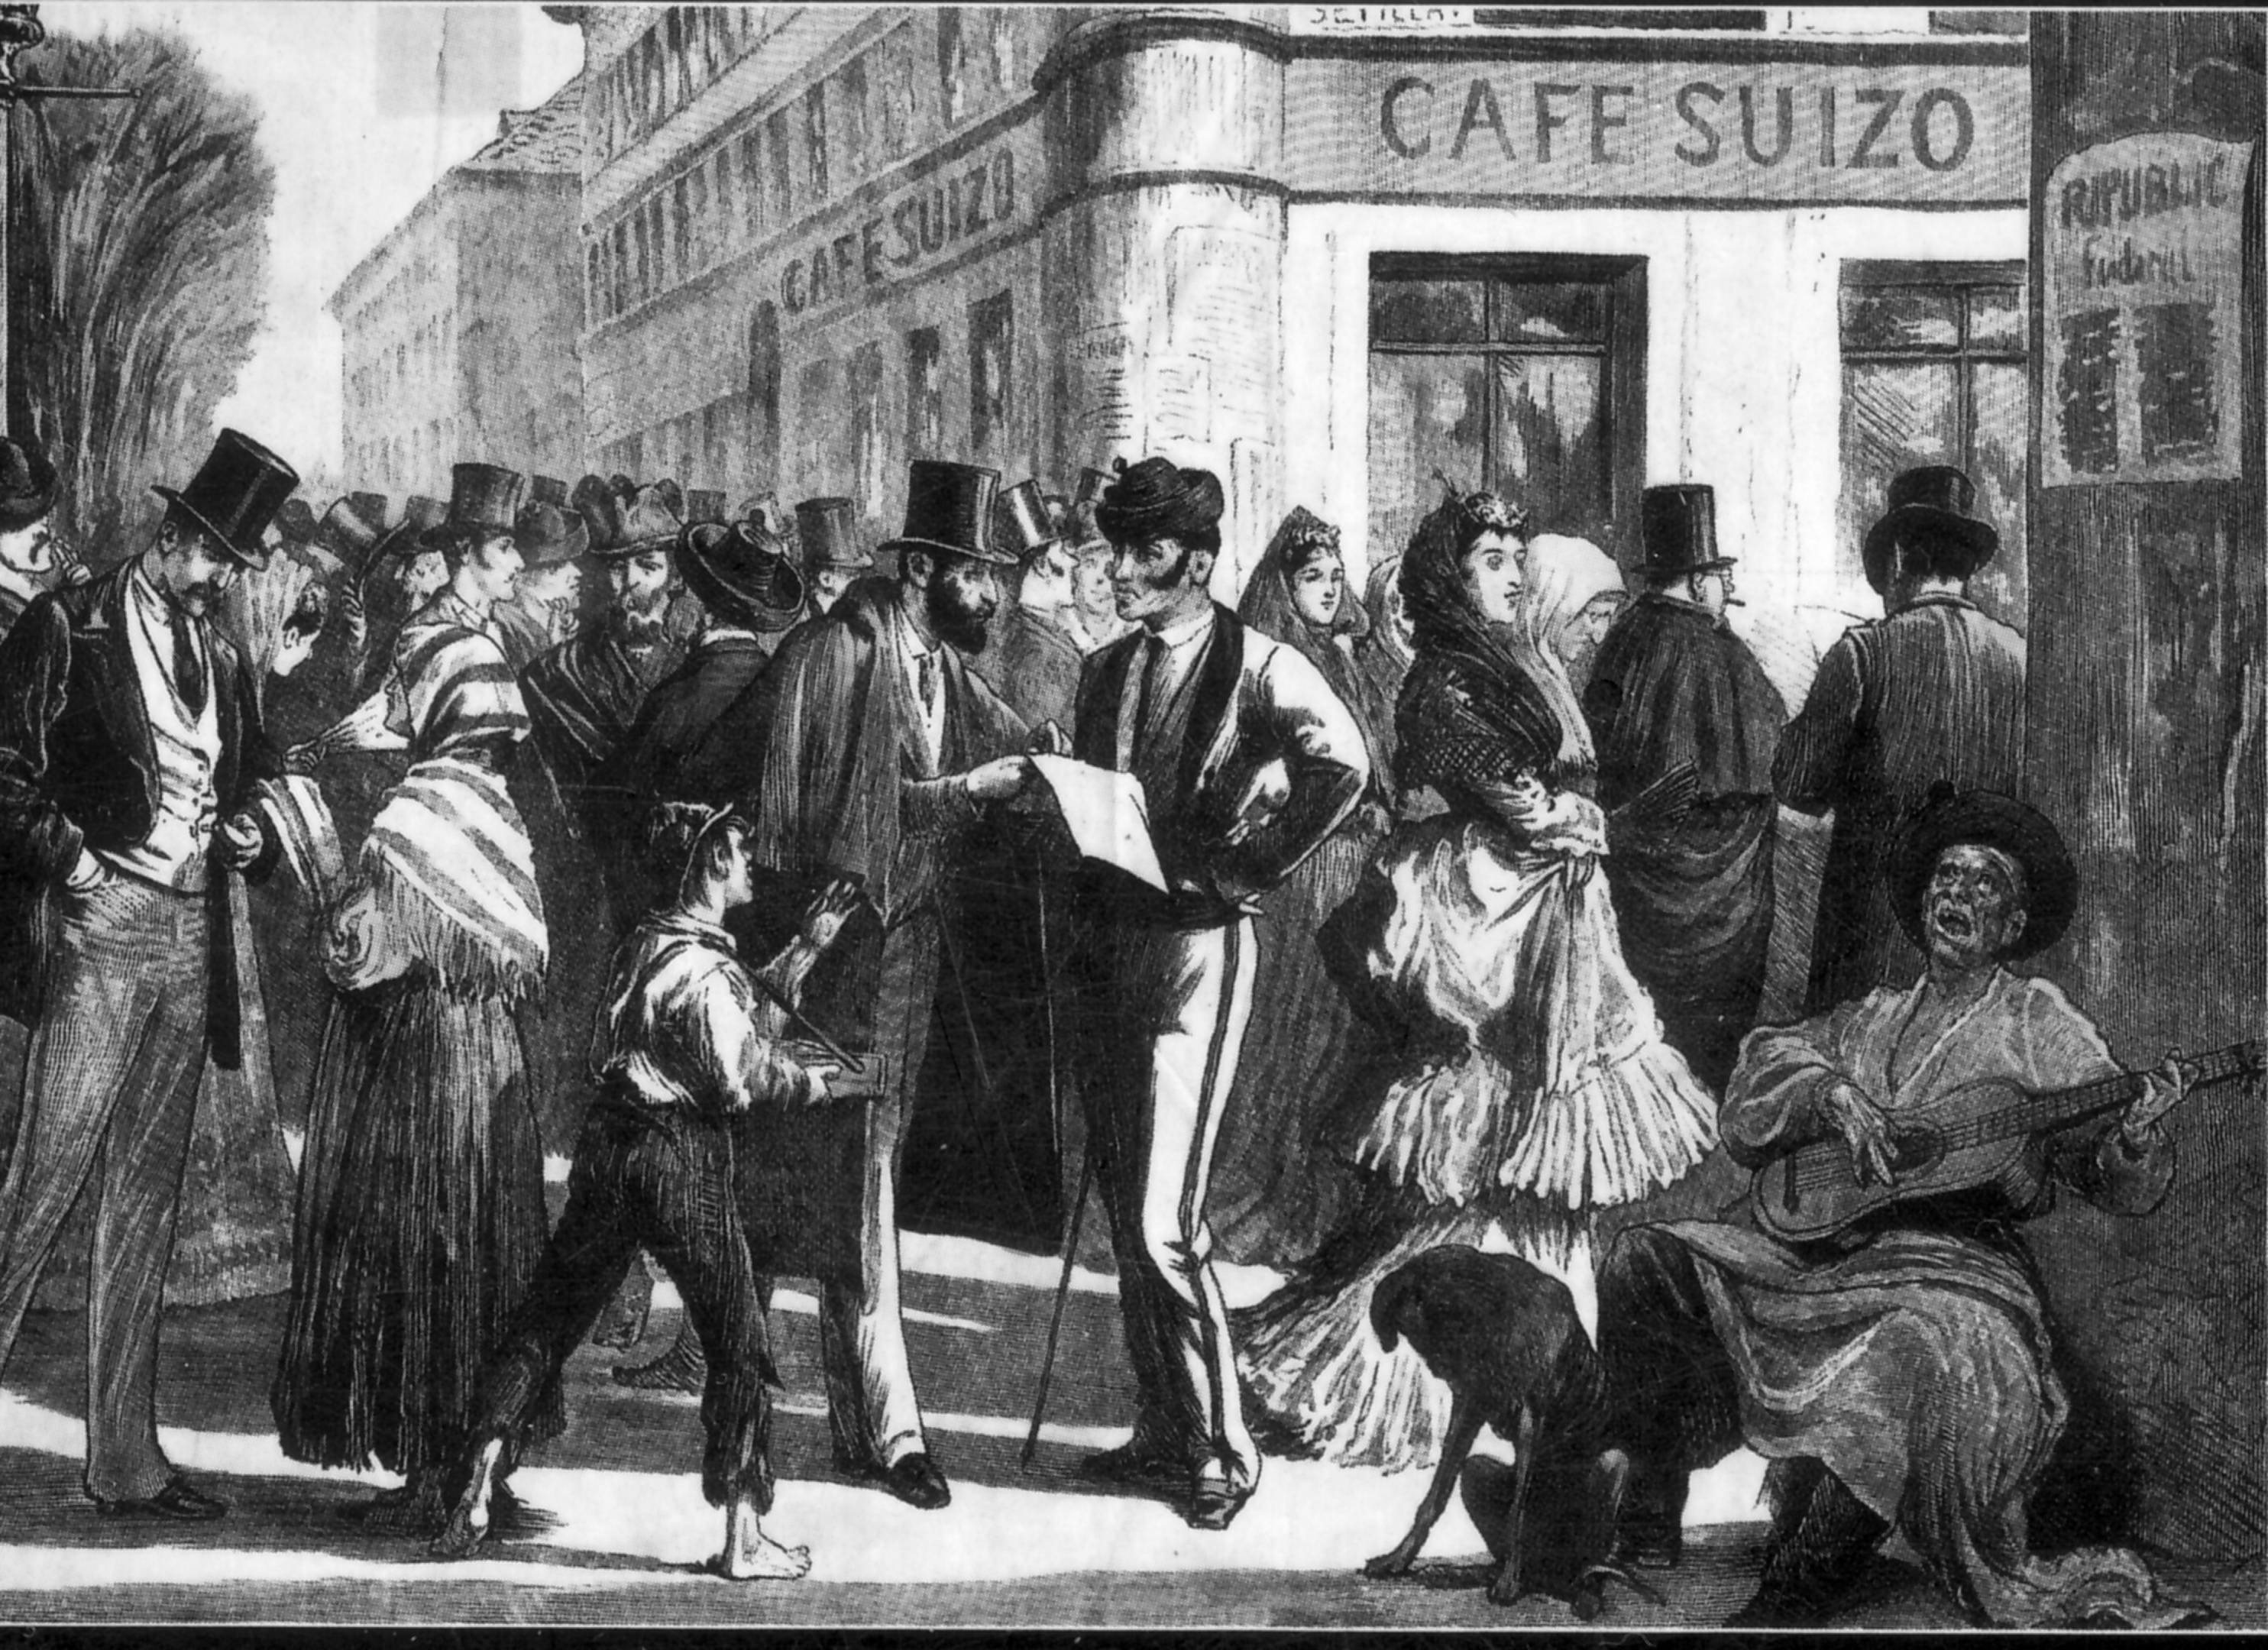 File:Cafe Suizo Madrid ca.1873.JPG